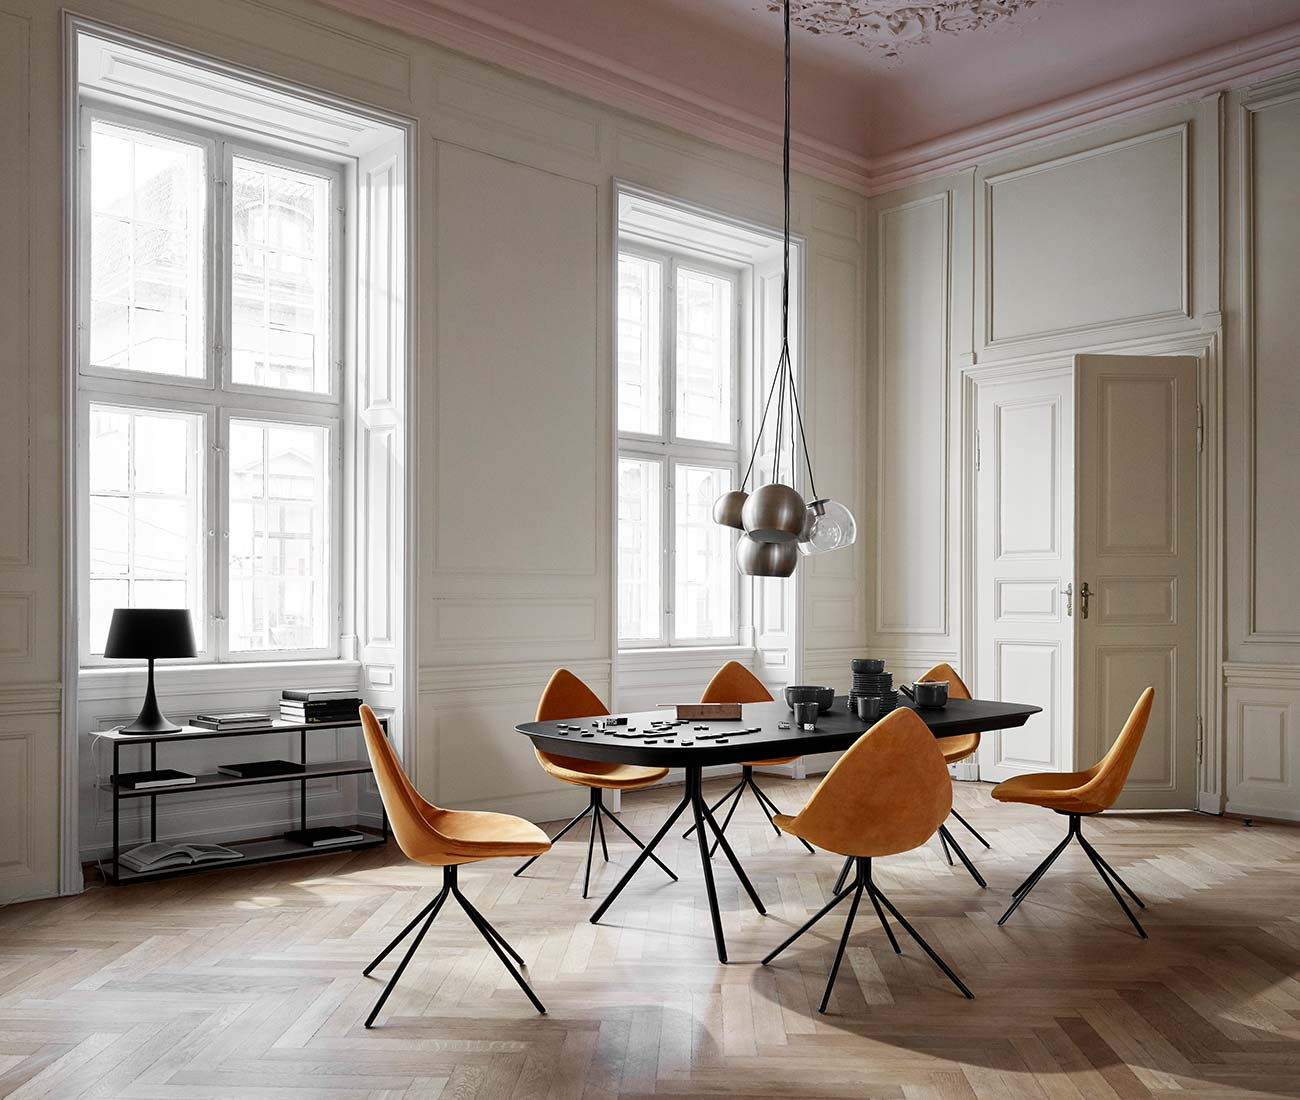 Möbel Scandinavian Design Modern Contemporary Furniture Design Boconcept